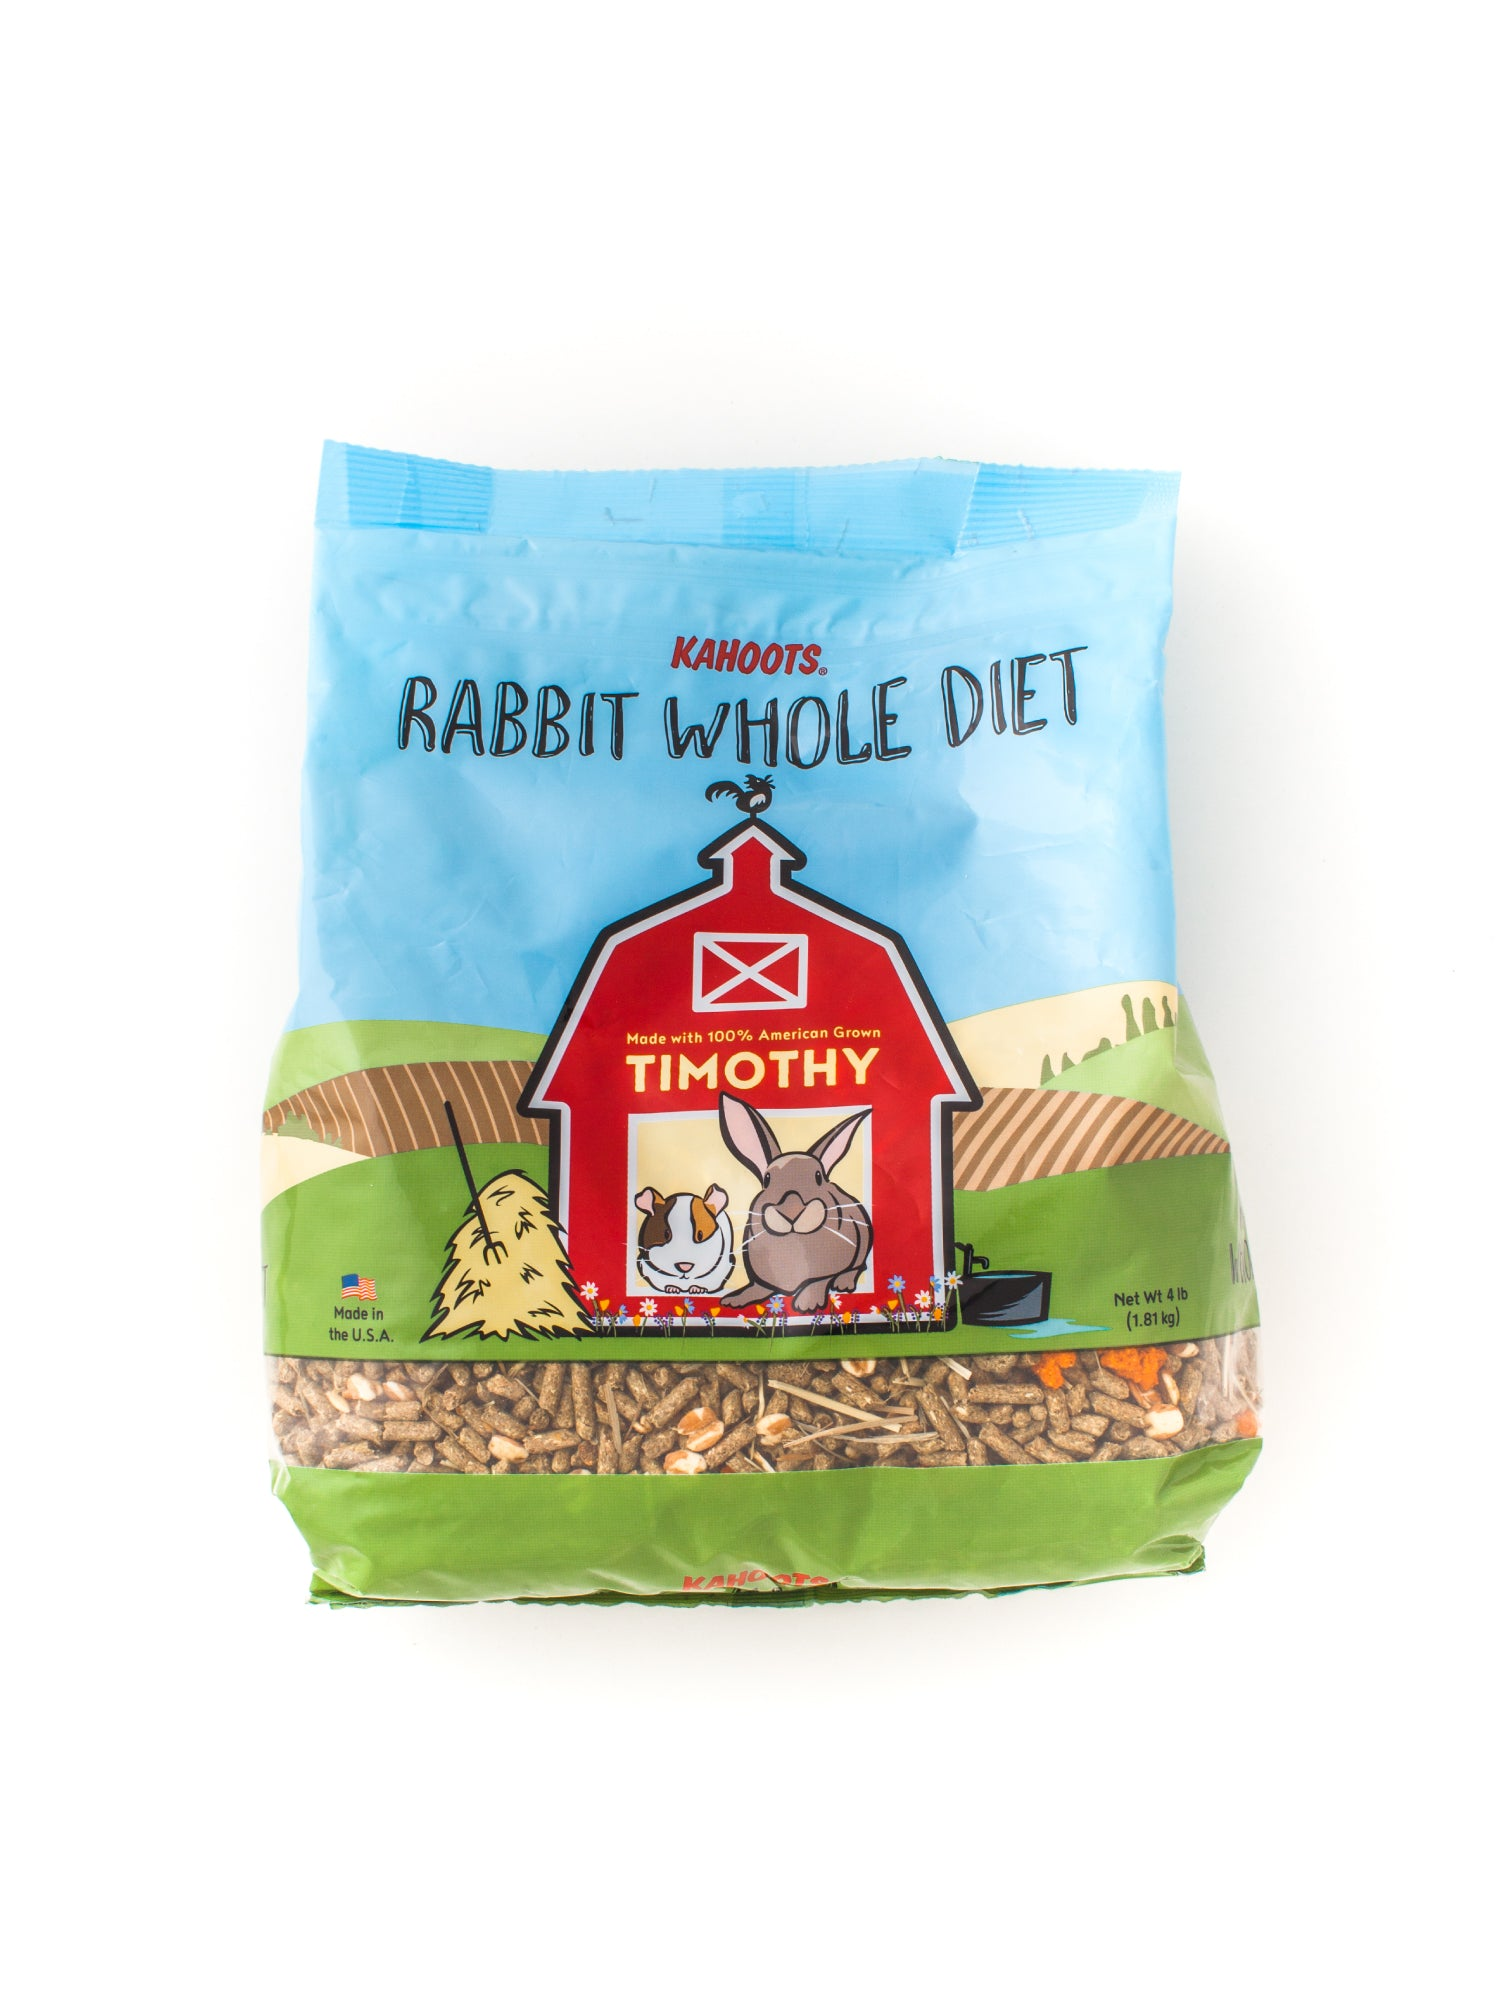 Rabbit pellets in bag. Cartoon of rabbit and guinea pig sitting in a red barn on front of bag